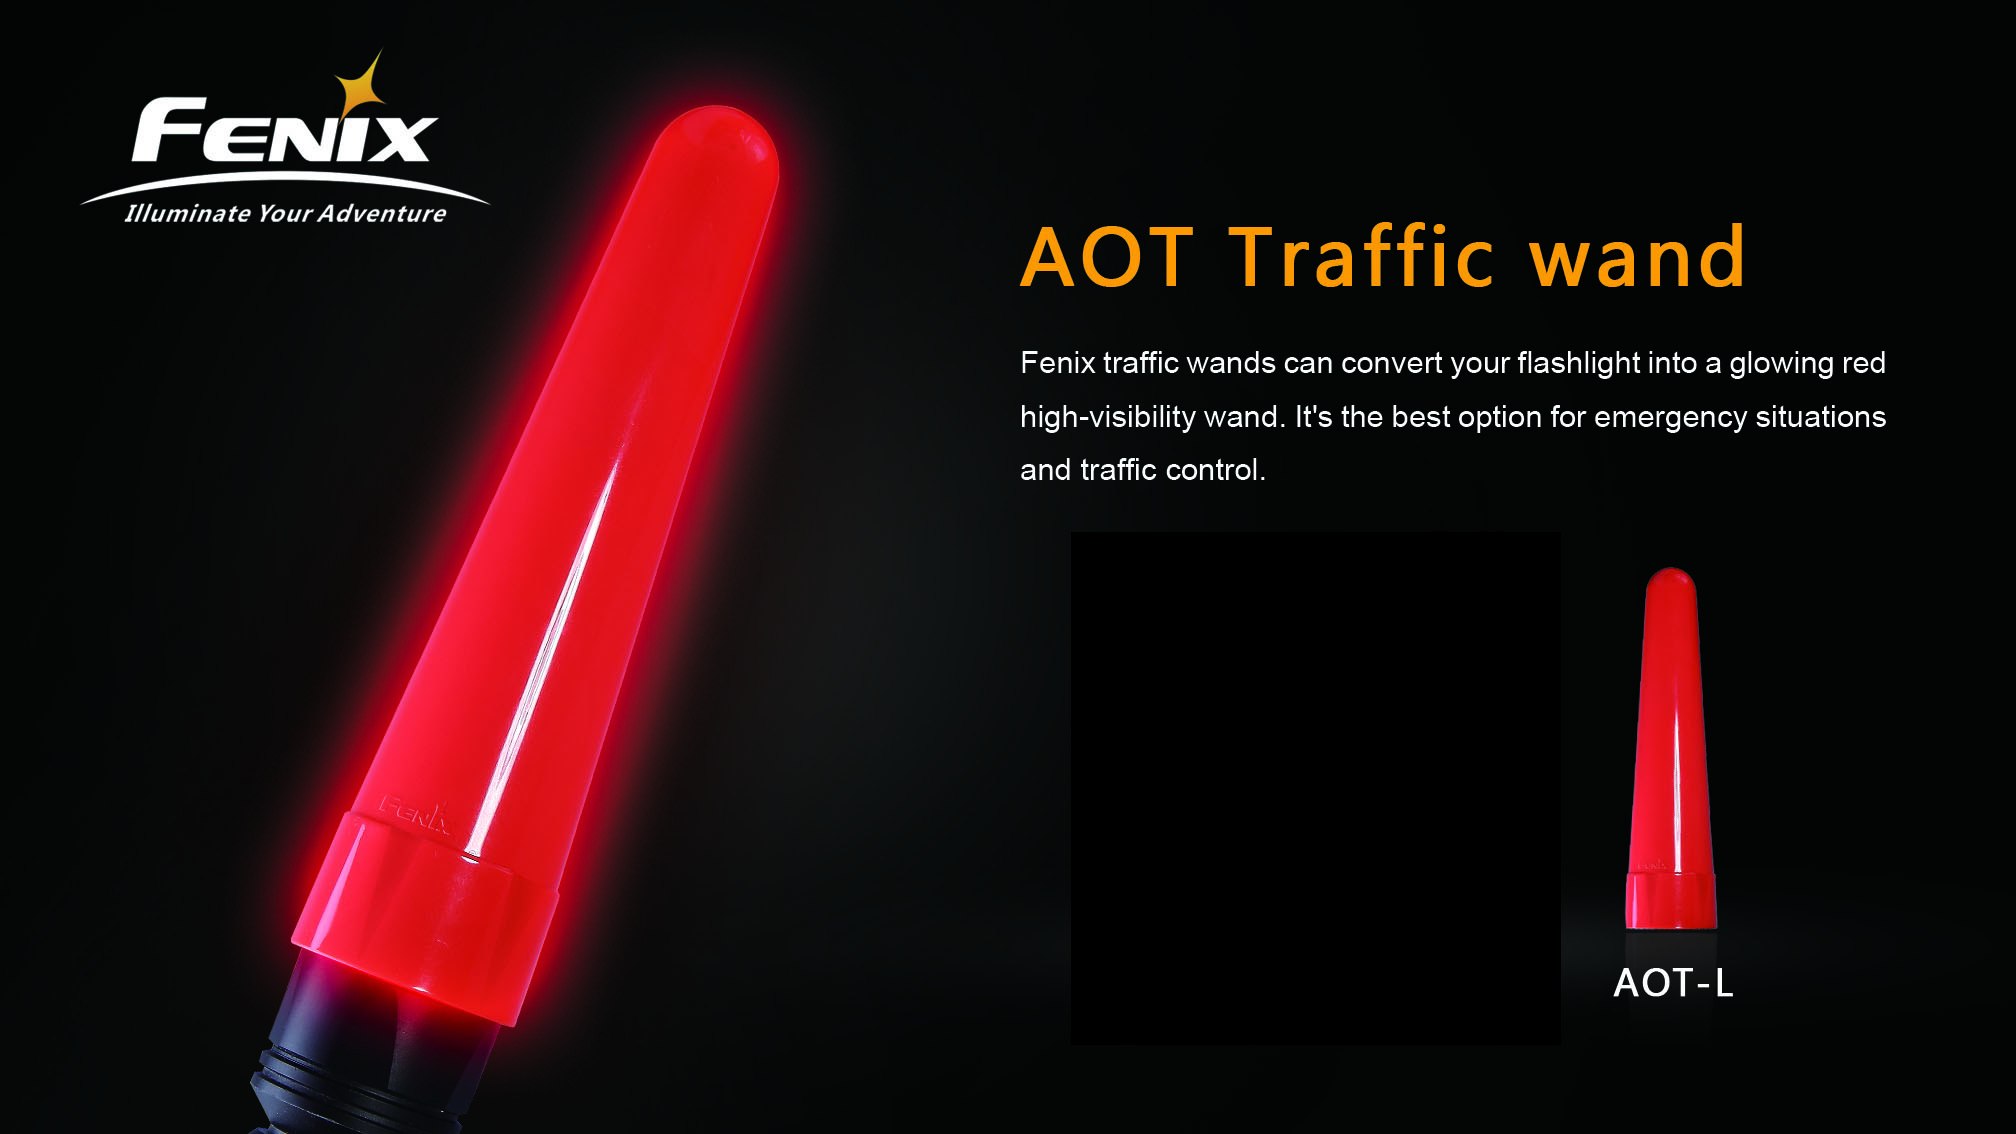 Fenix AOT-L Traffic Wand